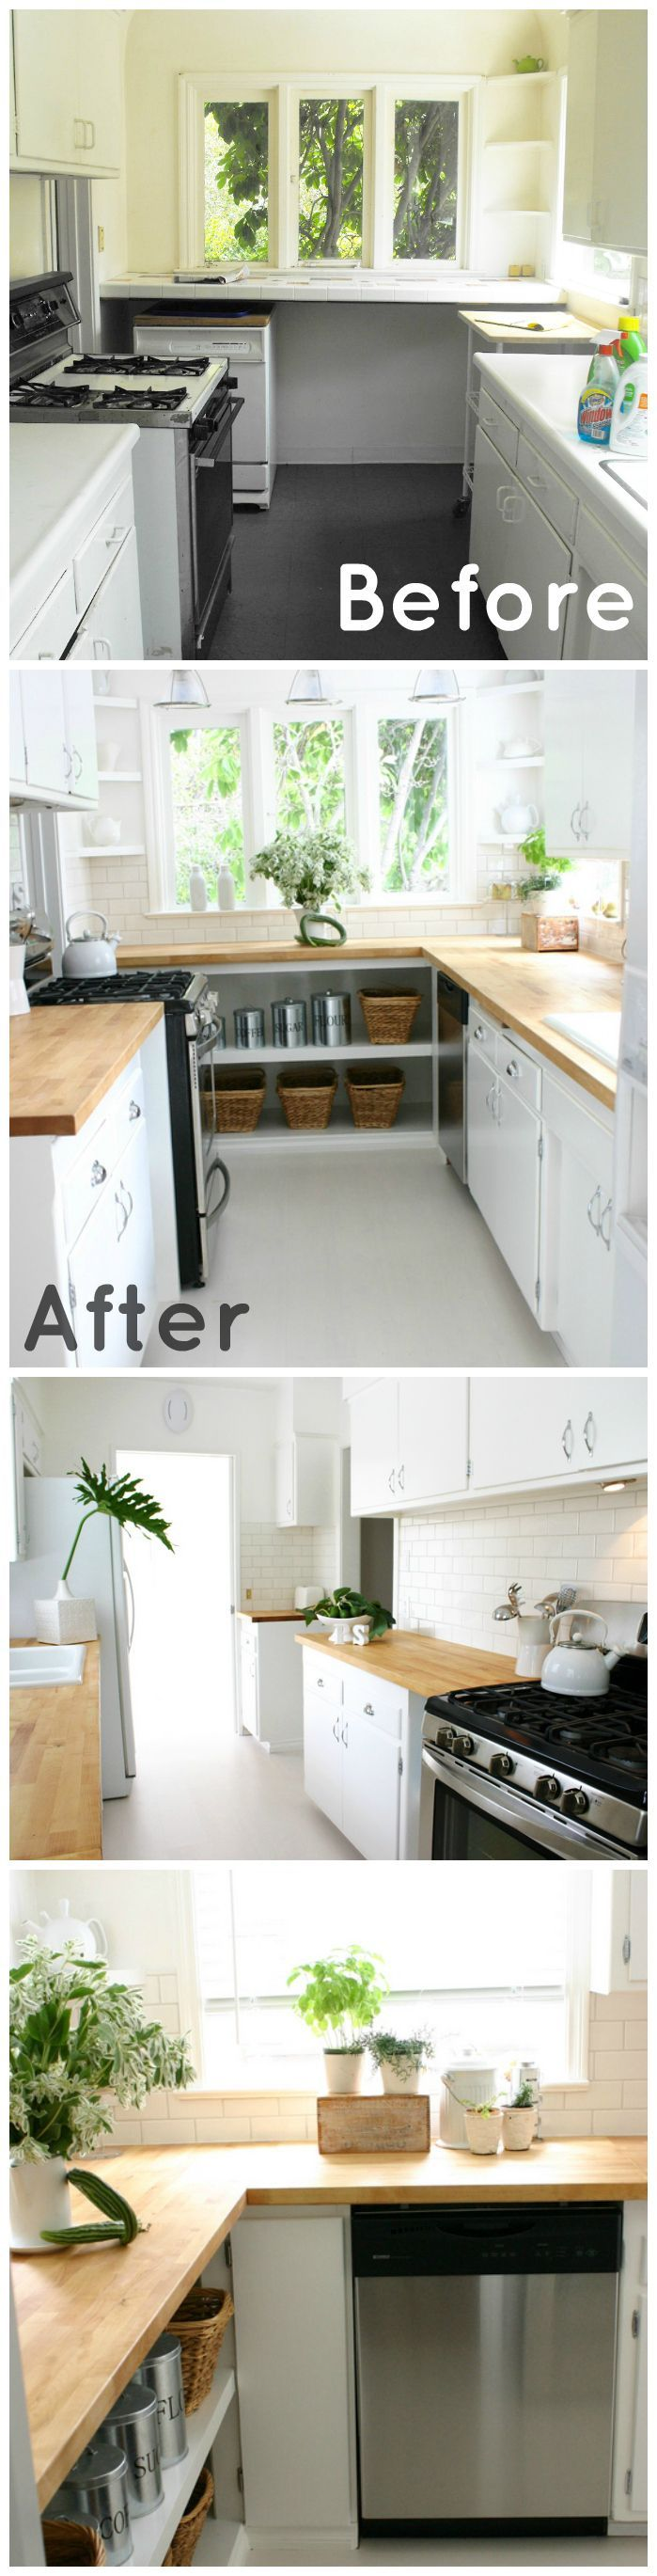 Here is a before and after of a 1920s Kitchen we remodeled!  Out with the old and in with the new. This is a rental home and we had a tight budget but funnily enough it is one of my favorite before and after kitchen projects.  Take a look at all of the photos from this project on my website! http://www.janicemccartydesign.com/portfolio/1920s-kitchen-remodel/  Please share and like!! :)  #1920 #kitchen #remodel #home #improvement #staging #design #decor #style #decorating #ikea #ideas #before